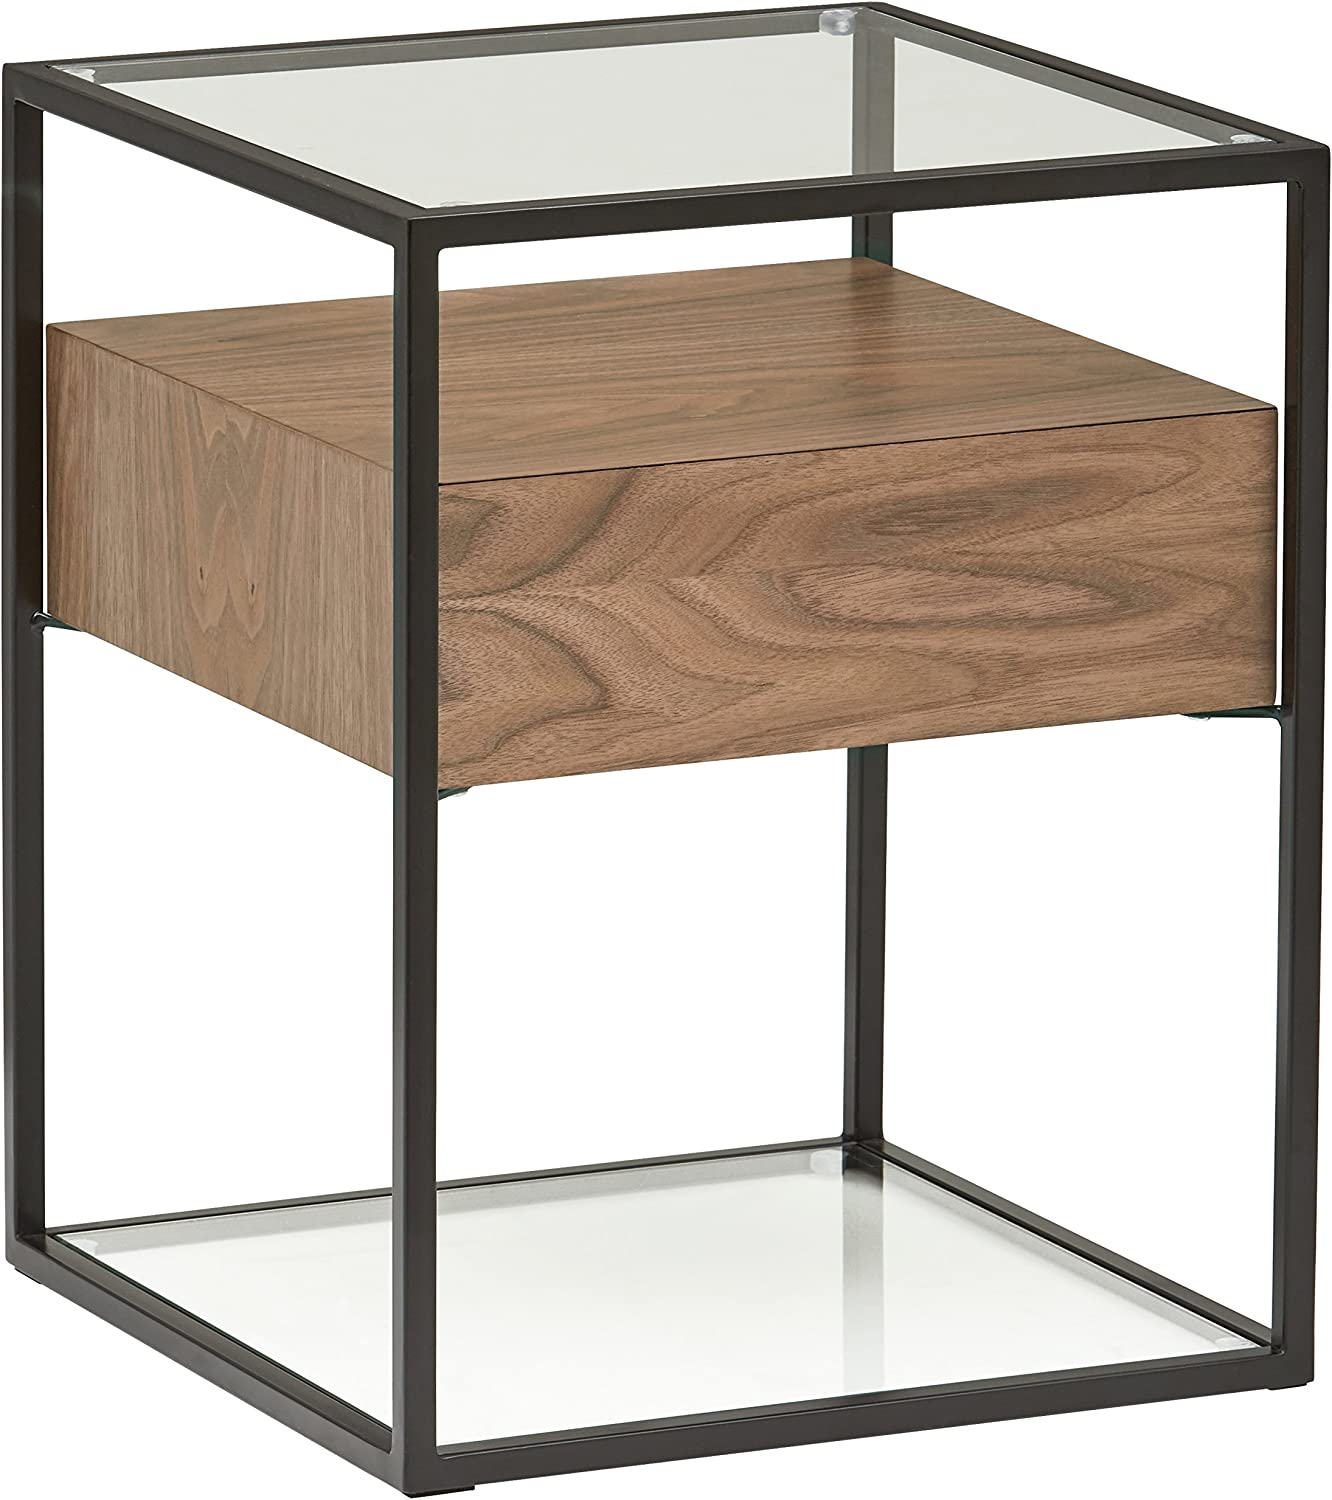 Cpap Table Nightstand Supplies Rollout Shelf Access Opening Side//Back Oak